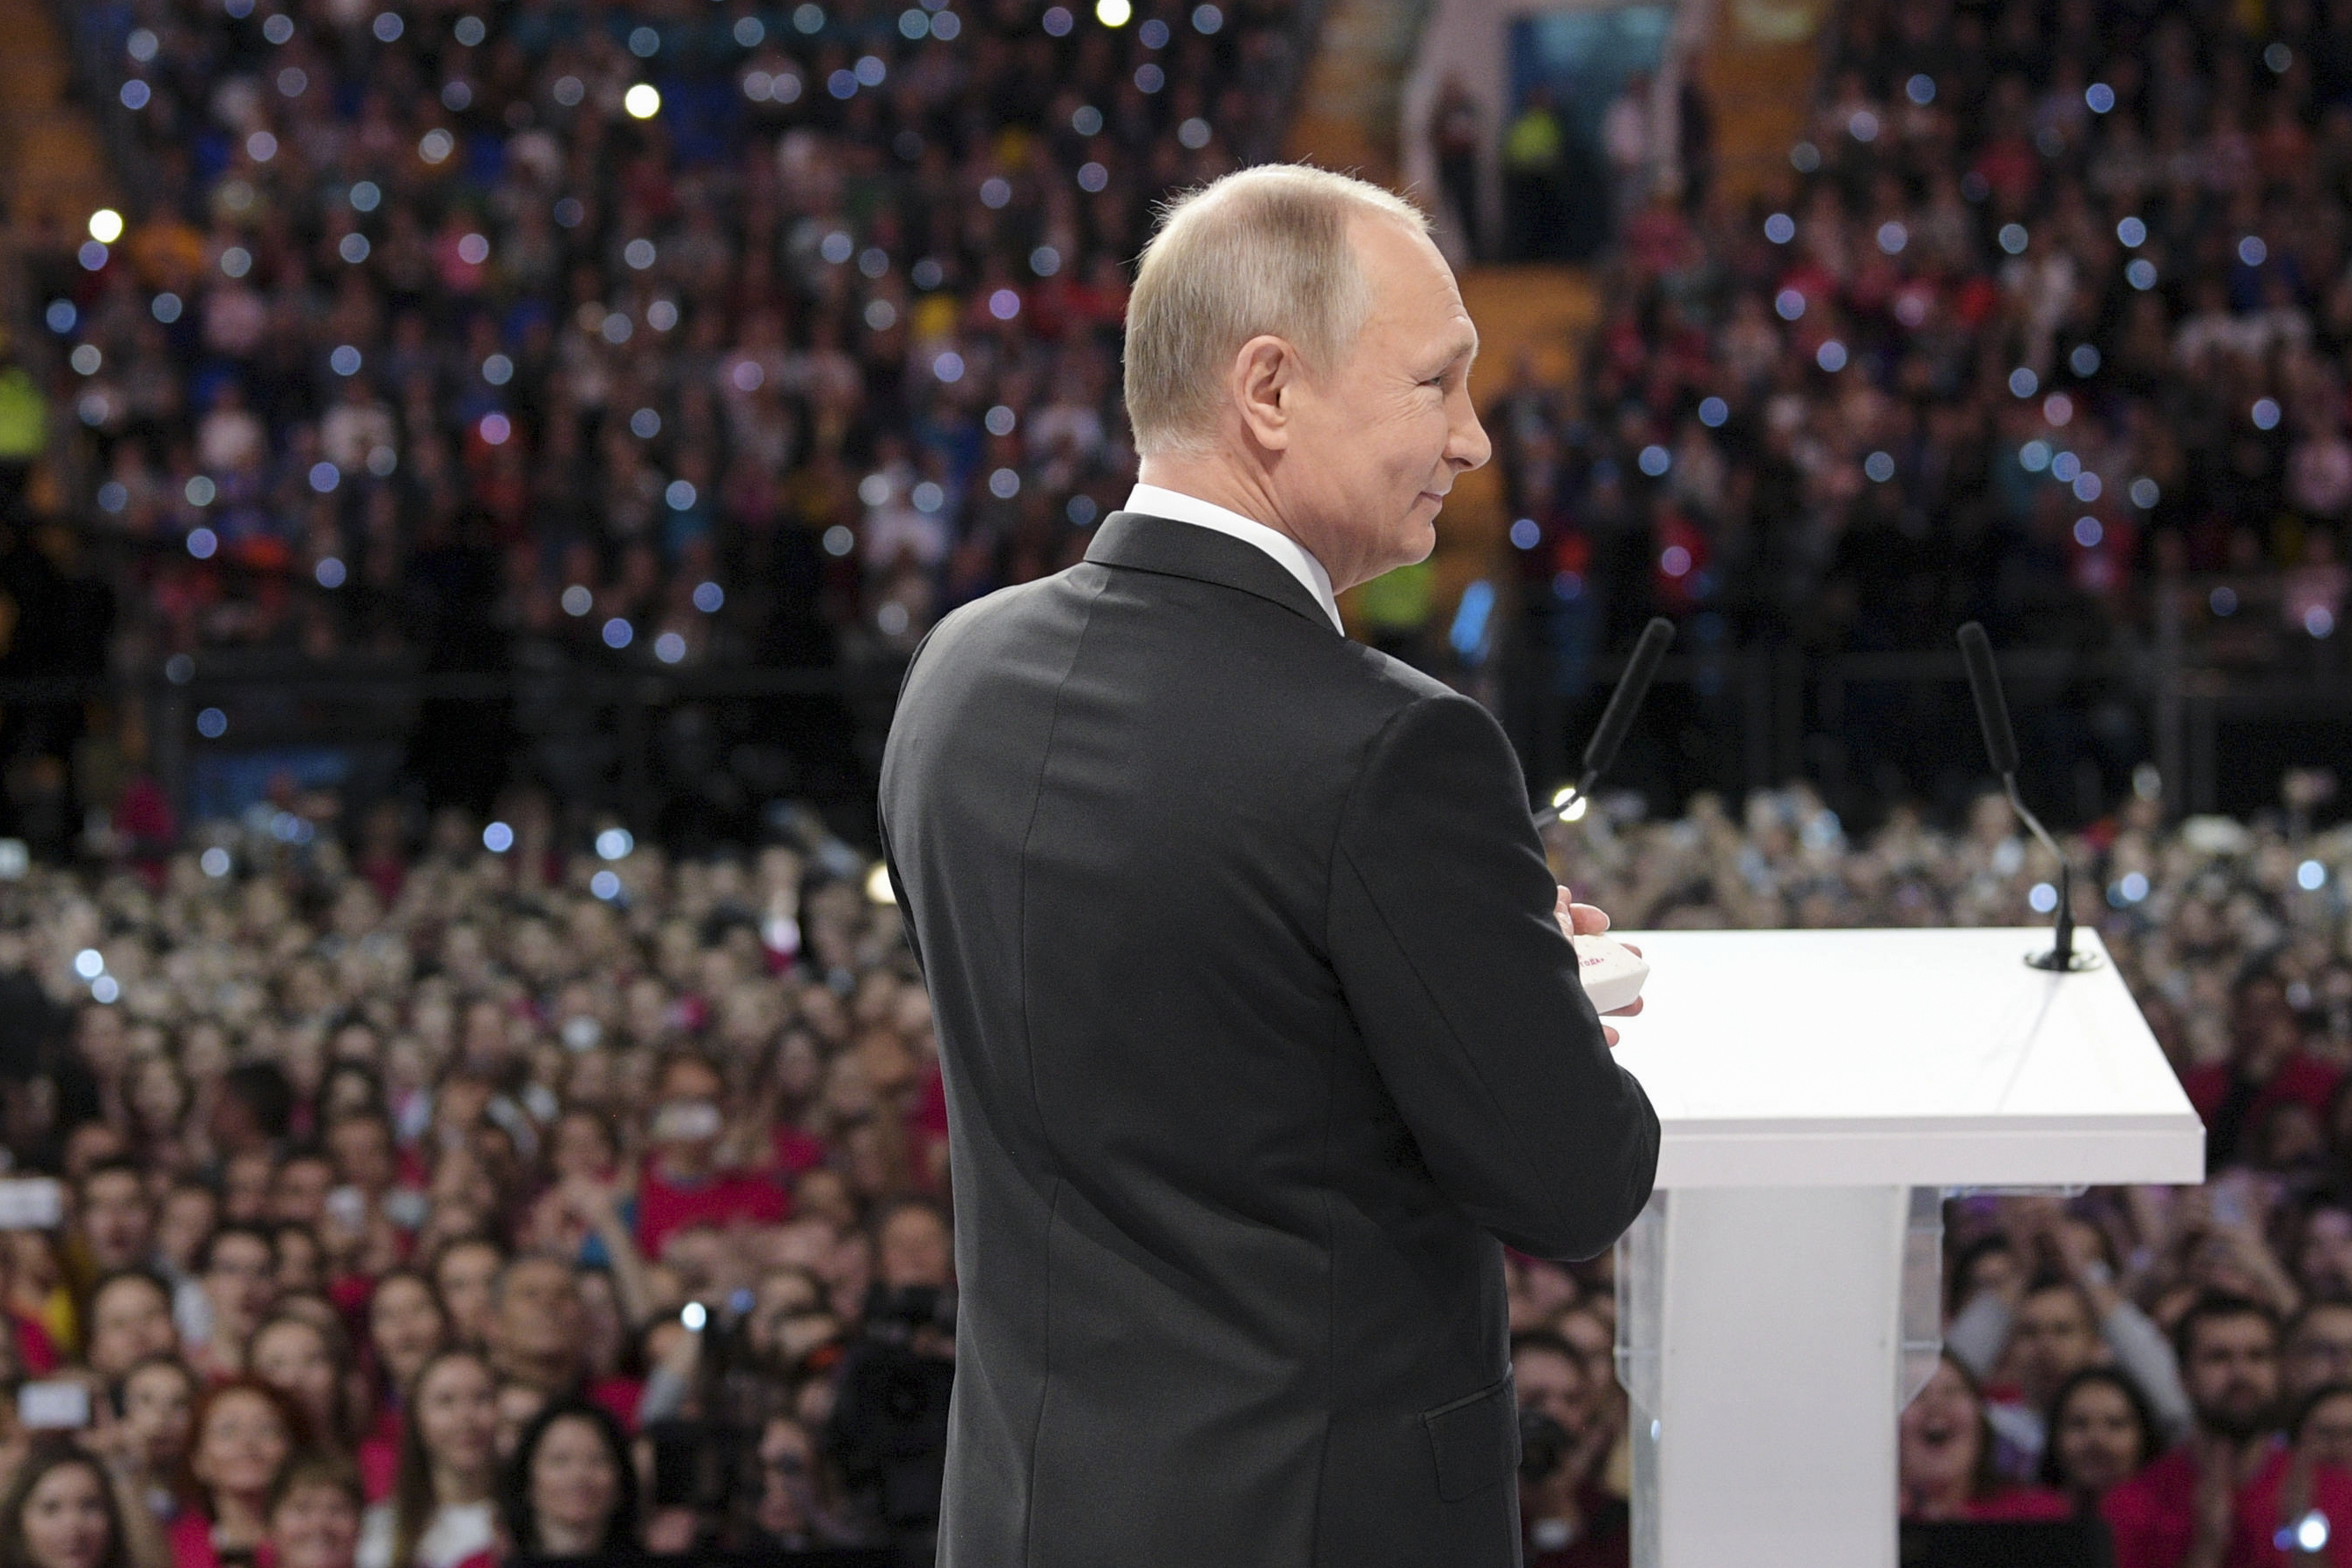 Russian President Vladimir Putin attends the annual Volunteer of Russia 2017 award ceremony at the Megasport Sport Palace in Moscow, Russia, Wednesday, Dec. 6, 2017. Putin has moved an inch closer to announcing his intention to seek re-election in the next March's vote, saying he would weigh the move based on public support.(Alexei Druzhinin, Sputnik, Kremlin Pool Photo via AP)